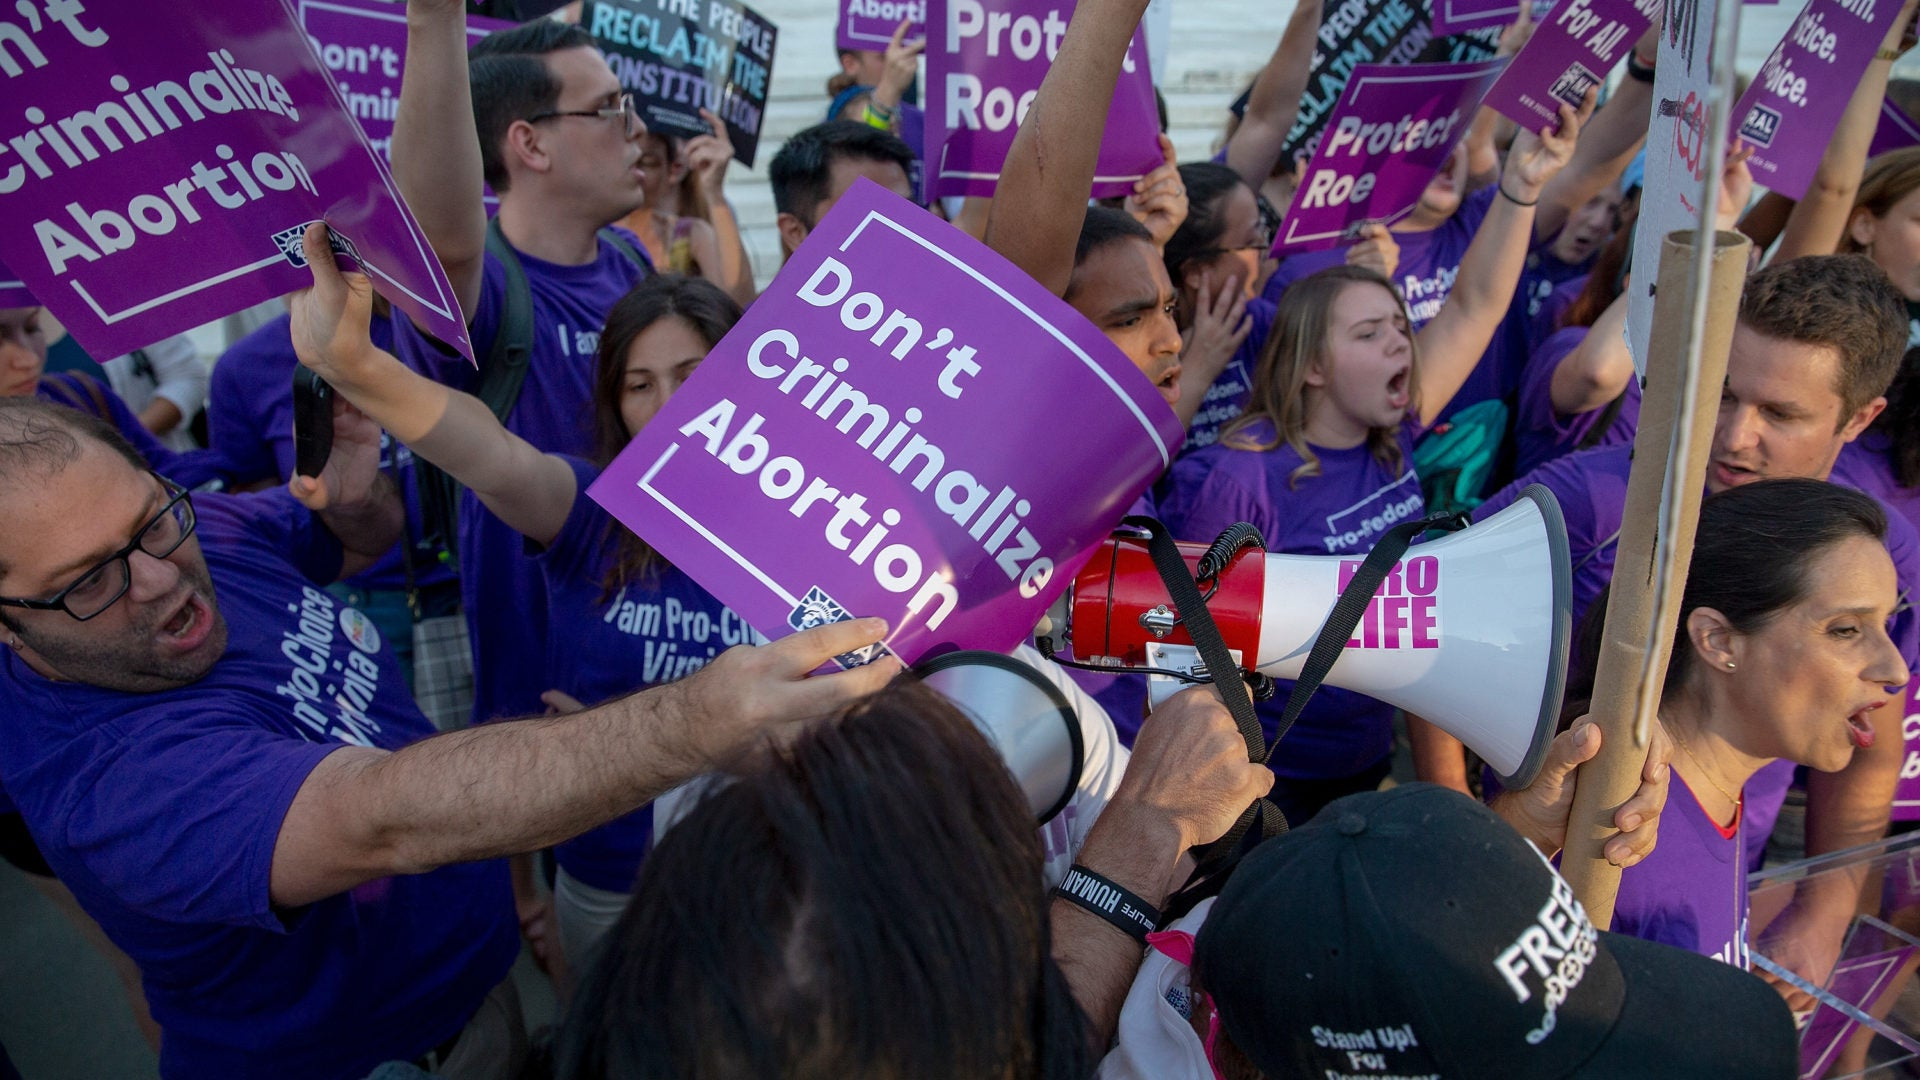 Missouri Senate Passes Bill Banning Abortion After 8 Weeks With No Exception For Rape, Incest